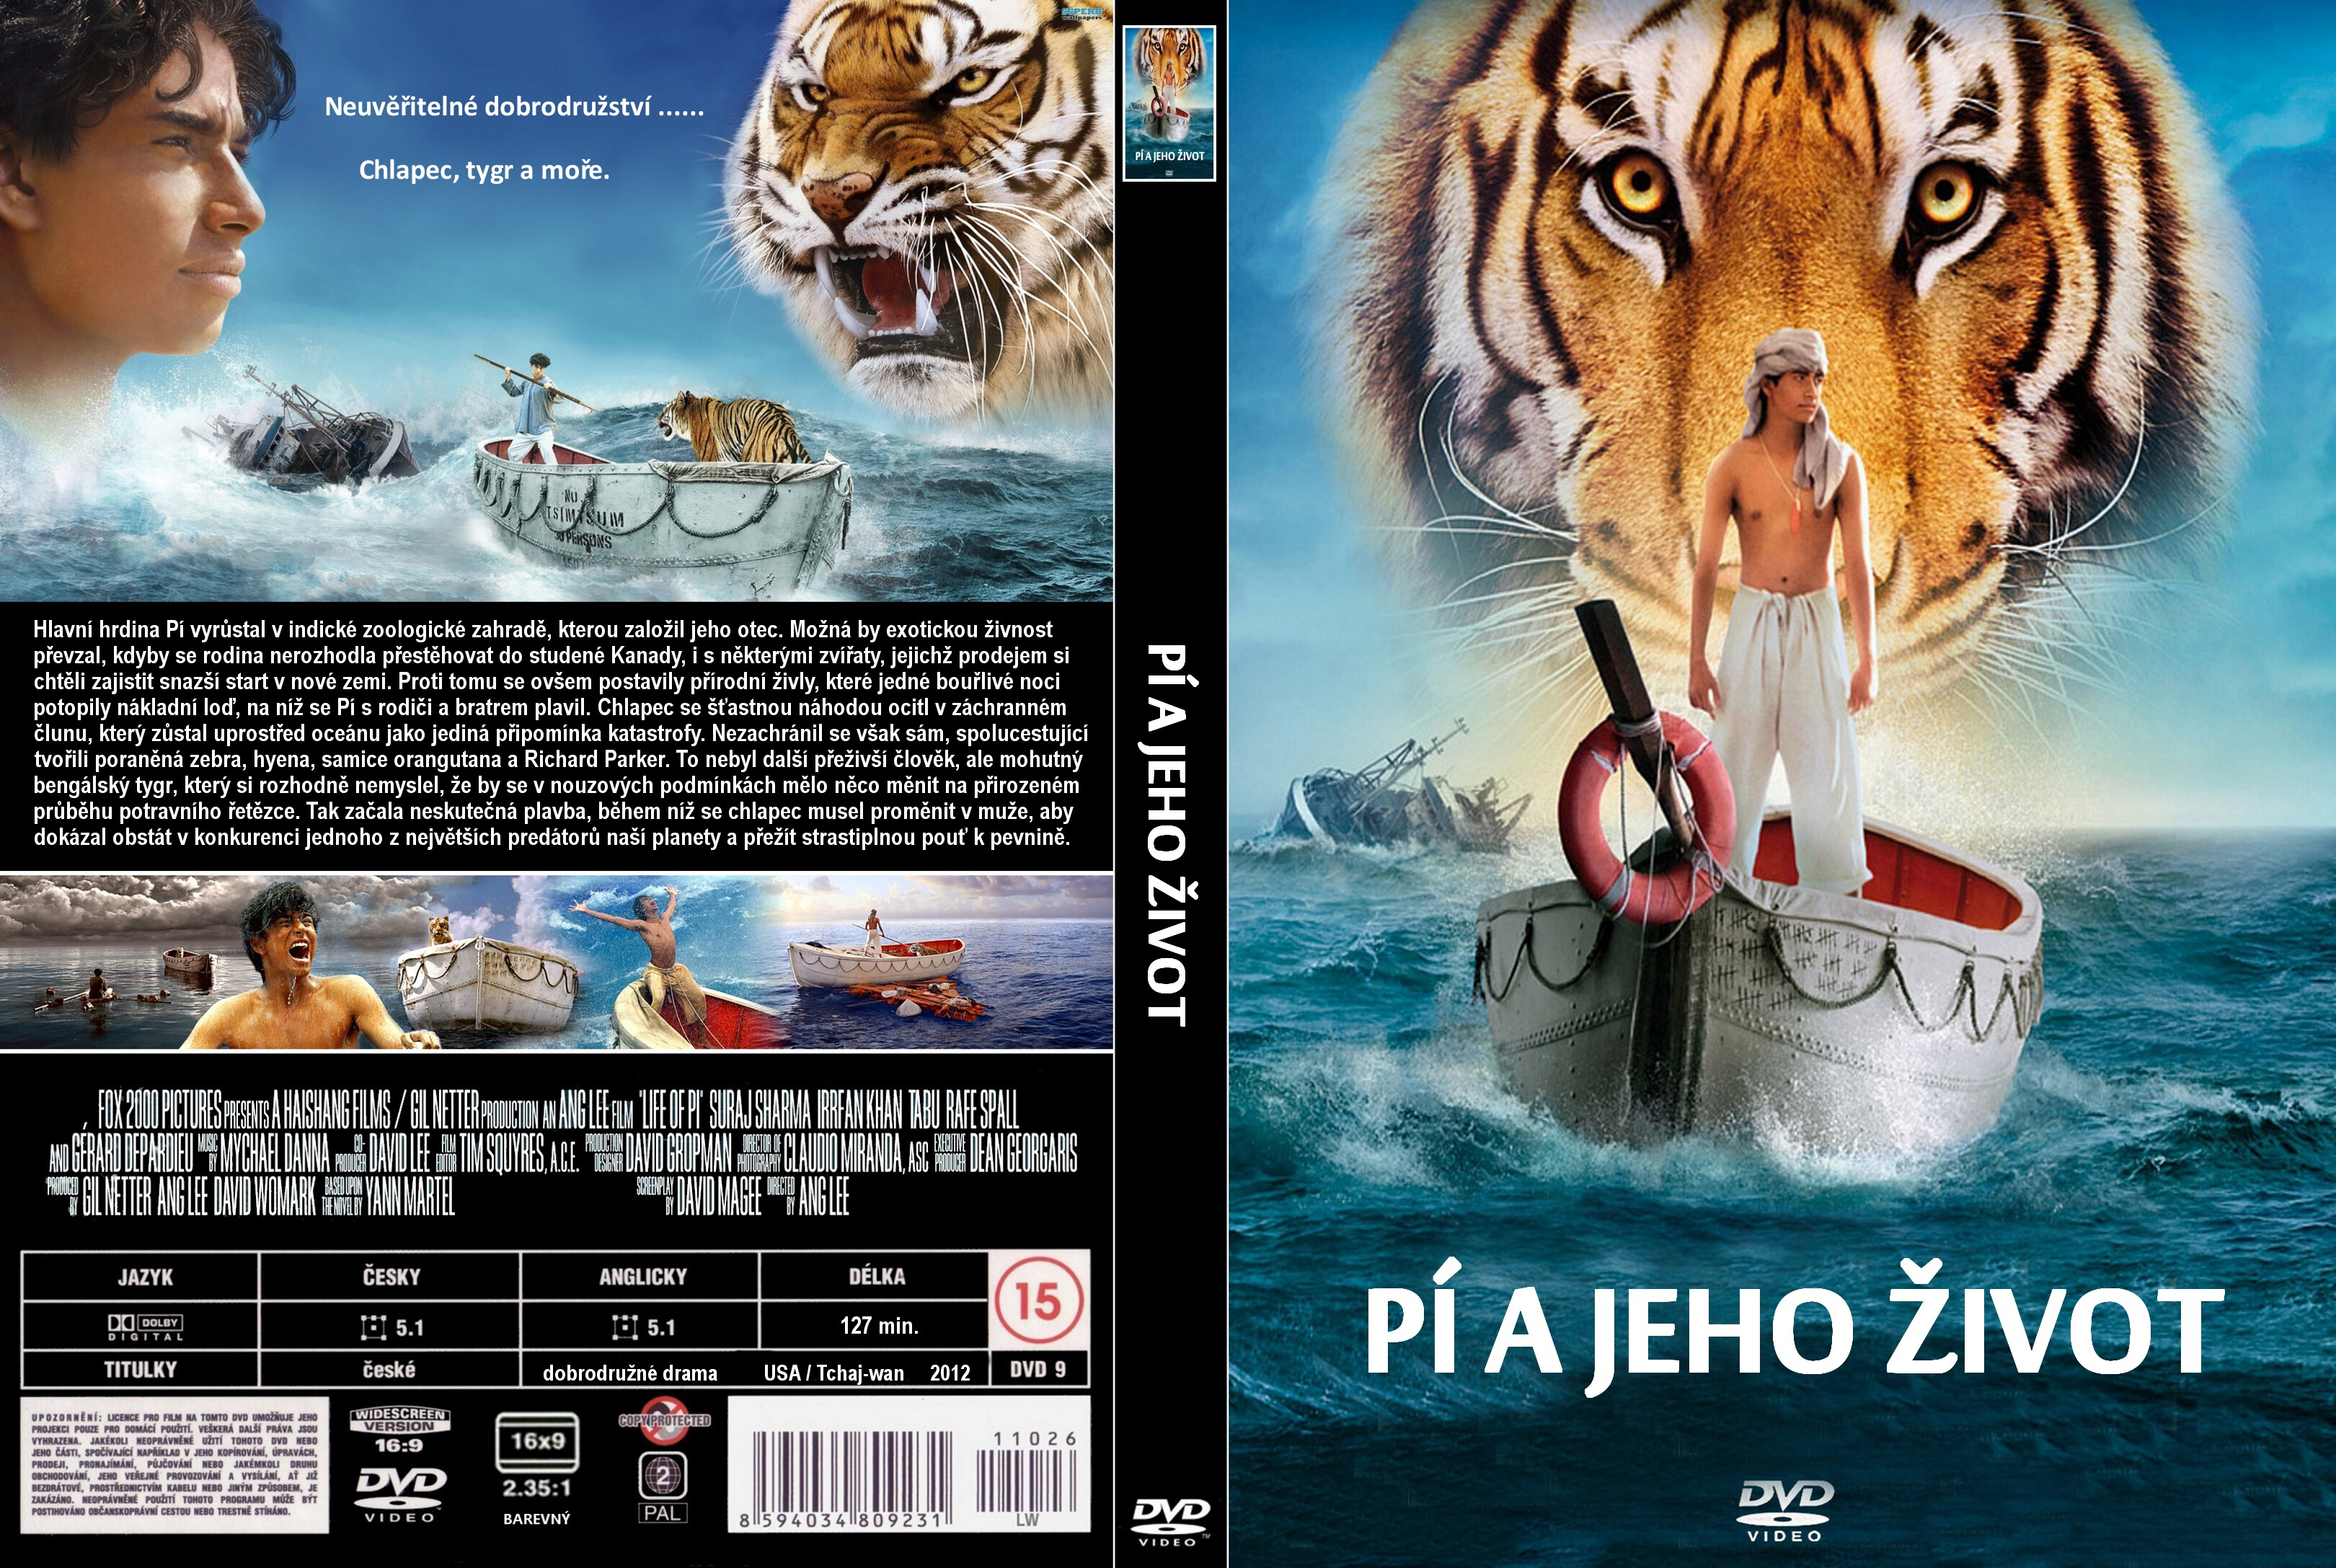 Covers Box Sk Life Of Pi 2012 High Quality Dvd Blueray Movie